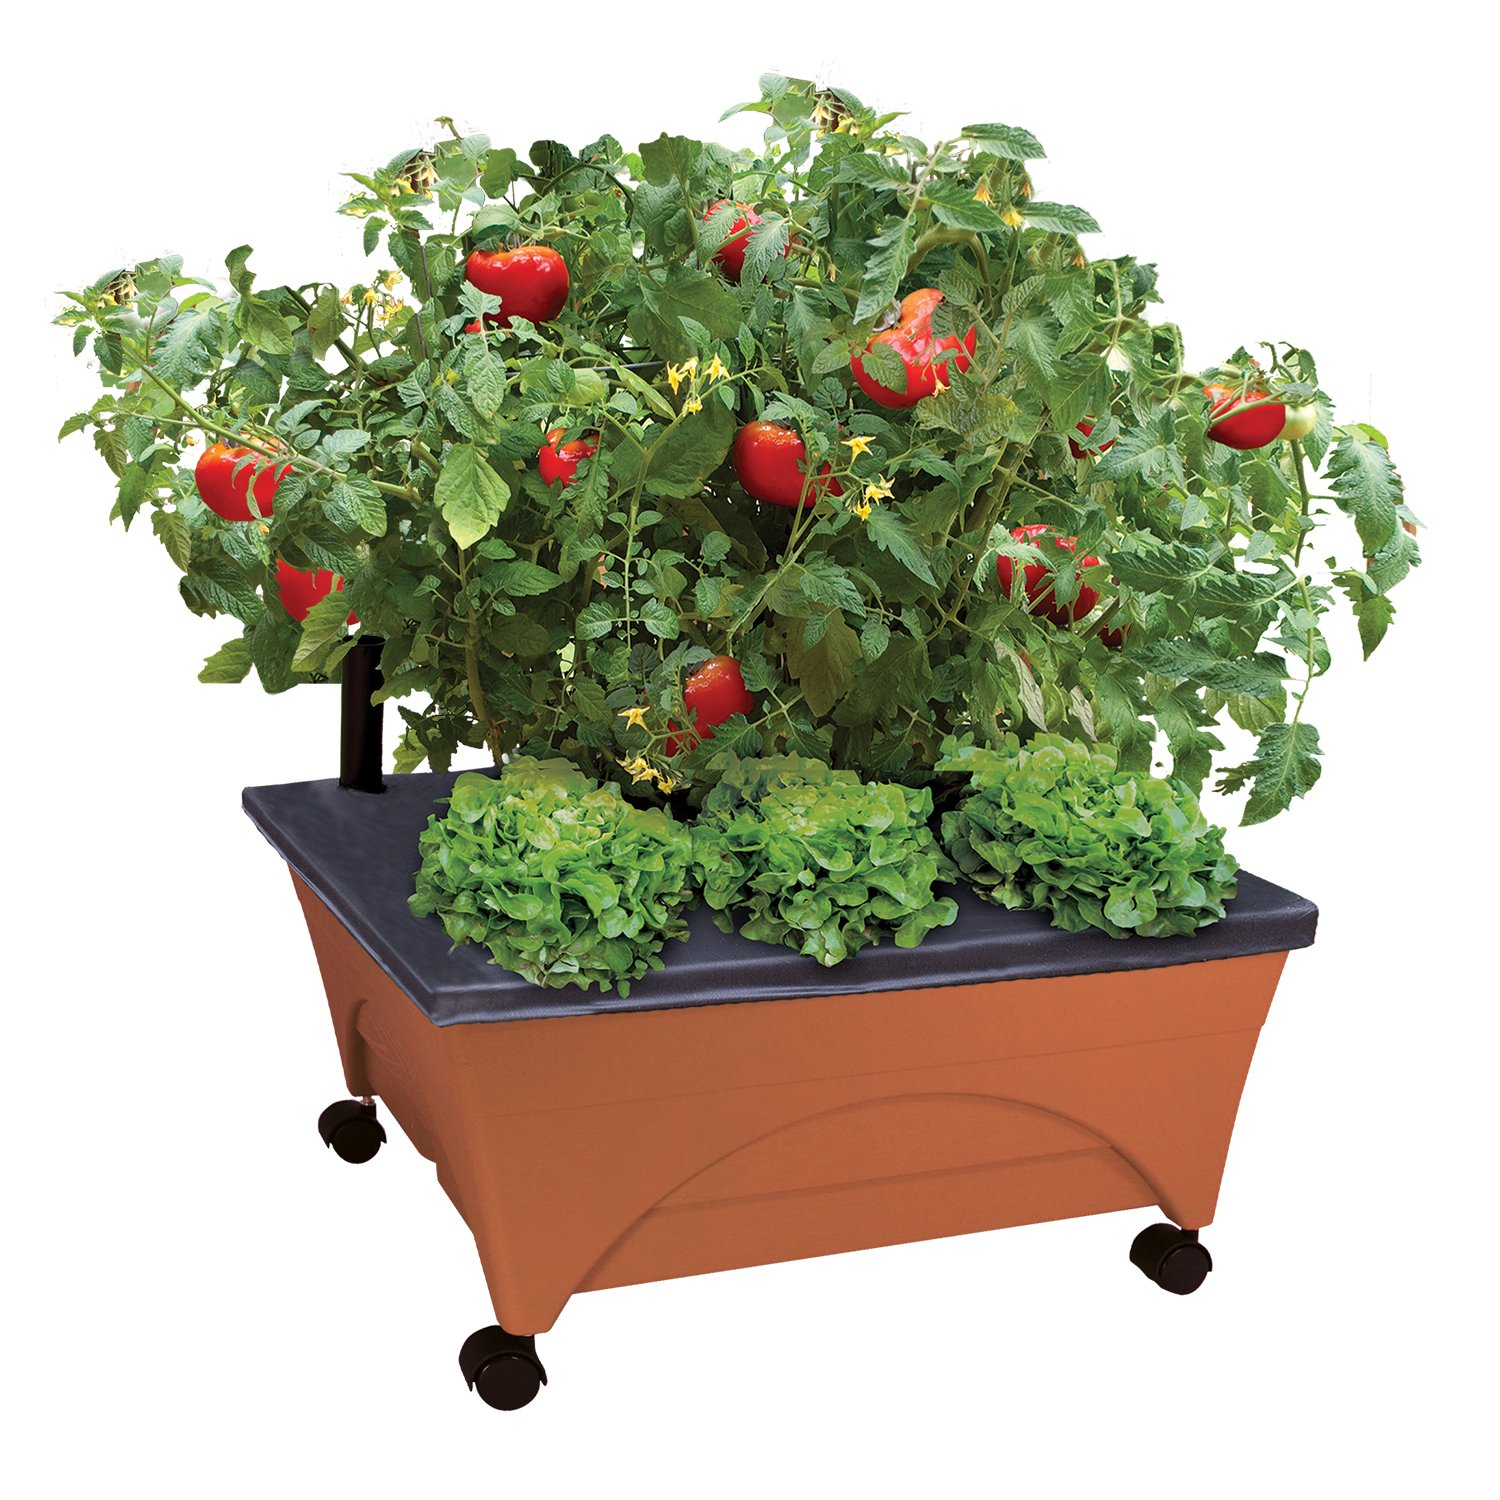 Amazon EMSCO Group City Picker Raised Bed Grow Box Self